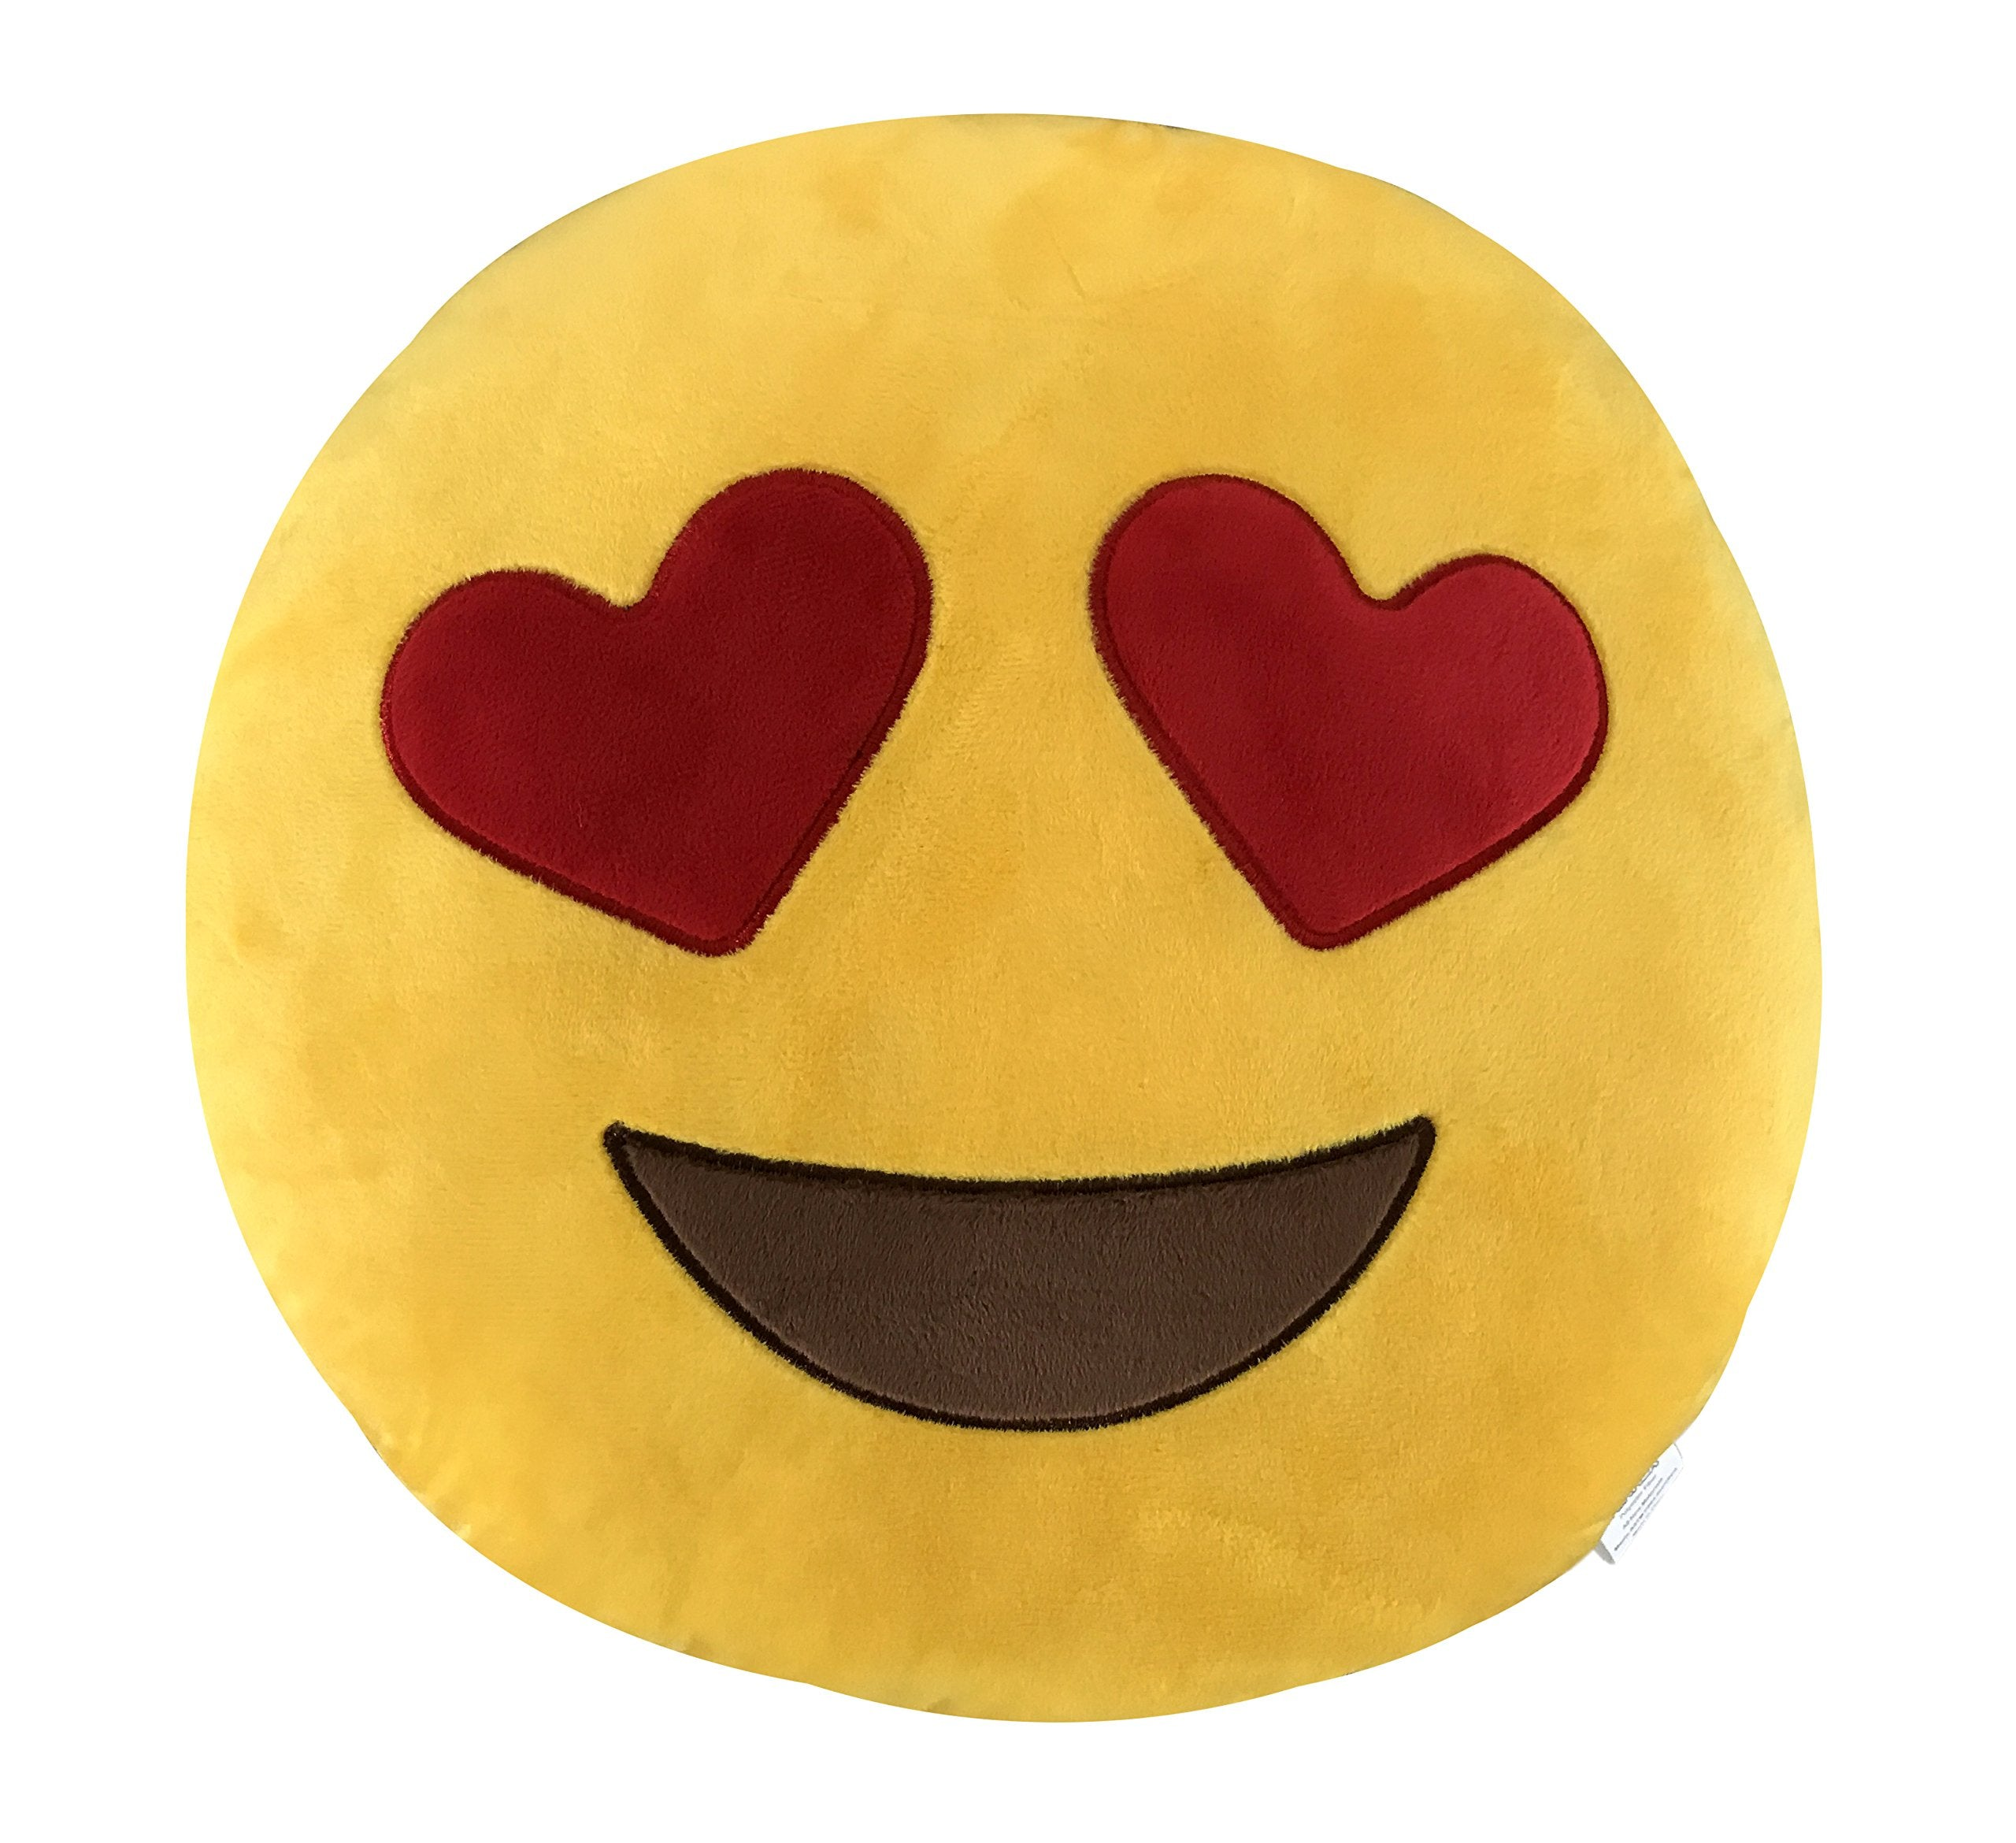 KINREX Emoji Pillow Toys For Kids And Adults